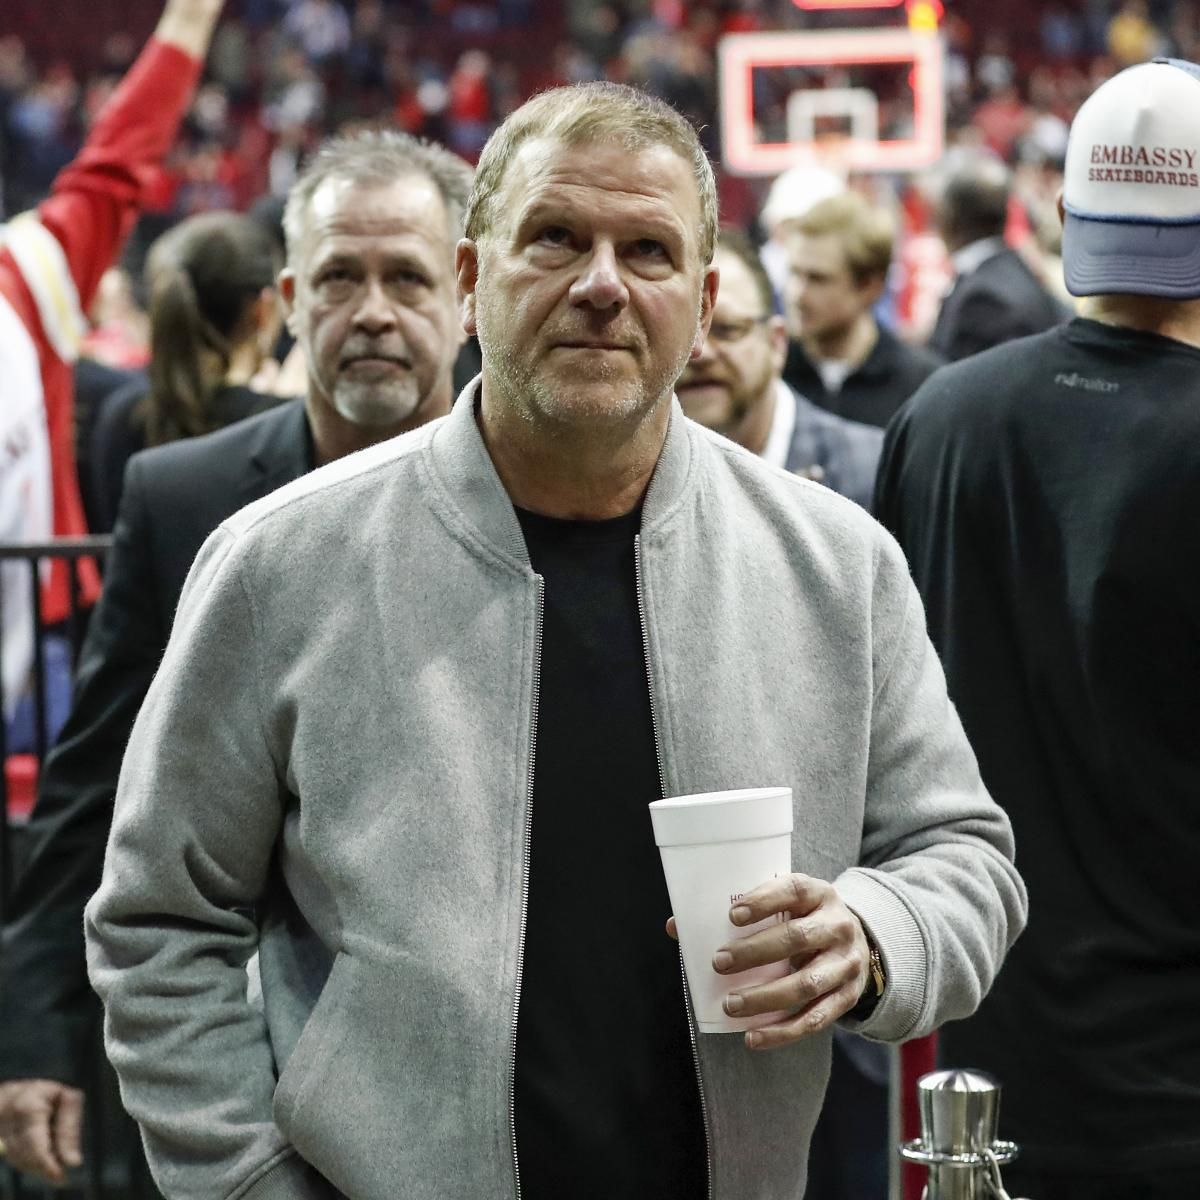 The NBA fined Houston Rockets owner Tilman Fertitta for comments he made regarding Russell Westbrook prior to the Rockets finalizing their trade to acquire the eight-time All-Star, according to the New York Times ' Marc Stein ...